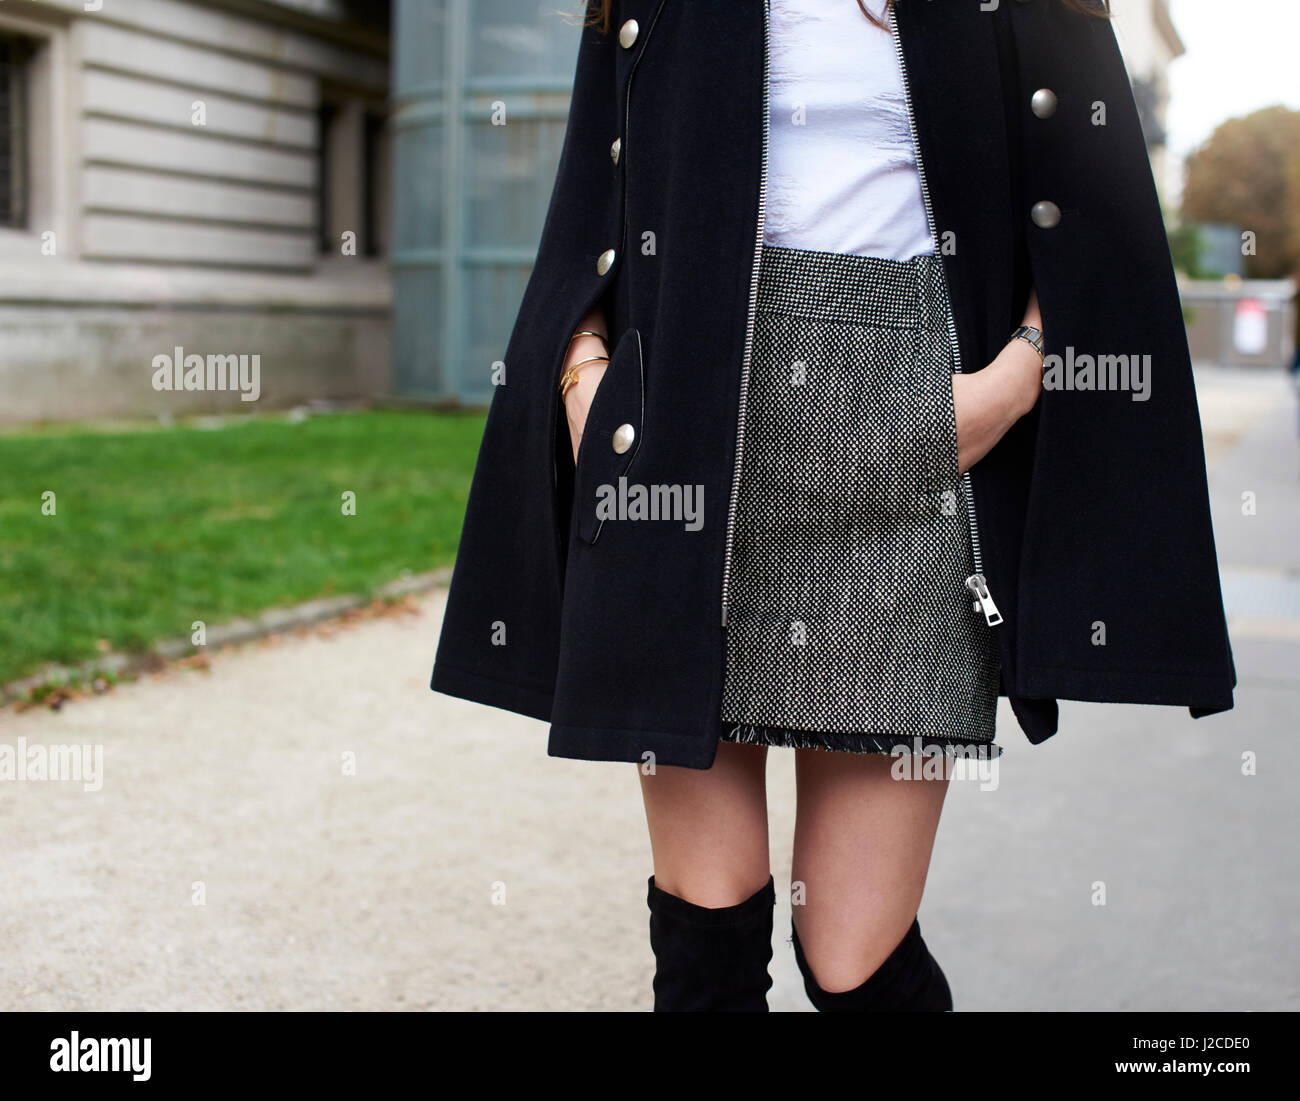 Woman in street wearing tweed miniskirt and black cape, crop - Stock Image